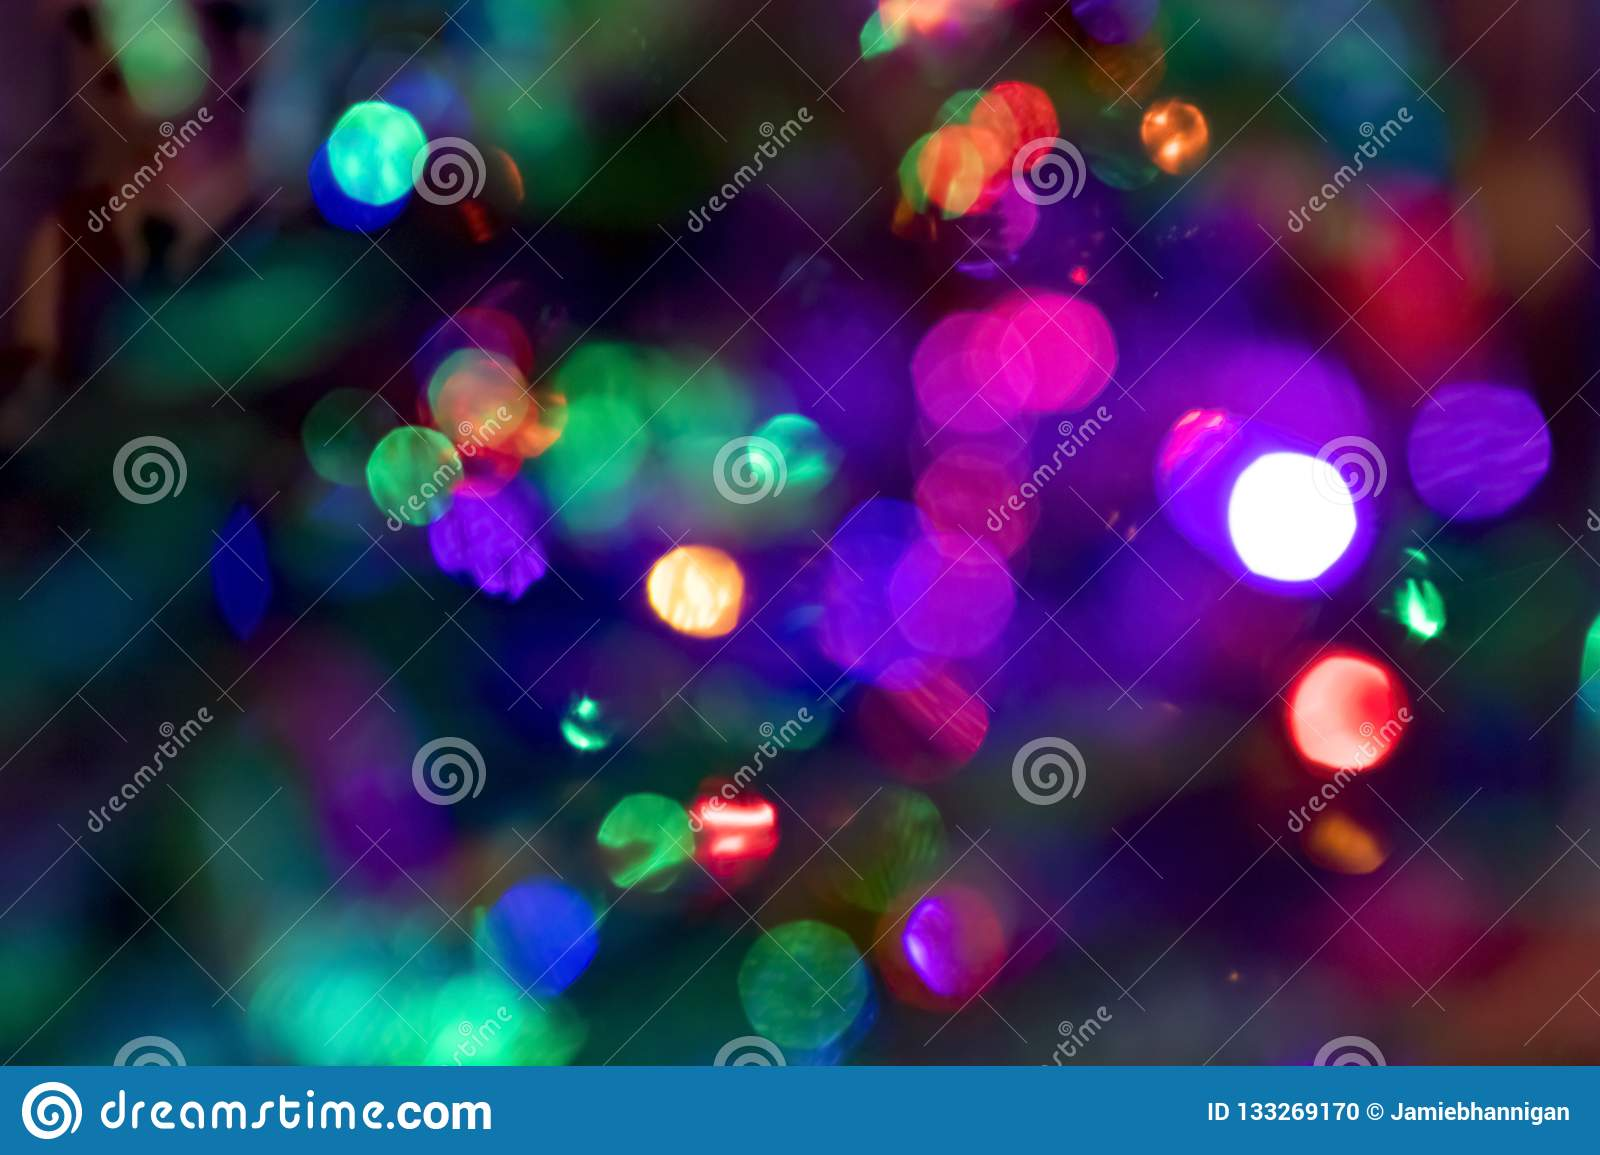 Colorful Christmas Lights Background.Colorful Christmas Lights Bokeh Background Stock Photo